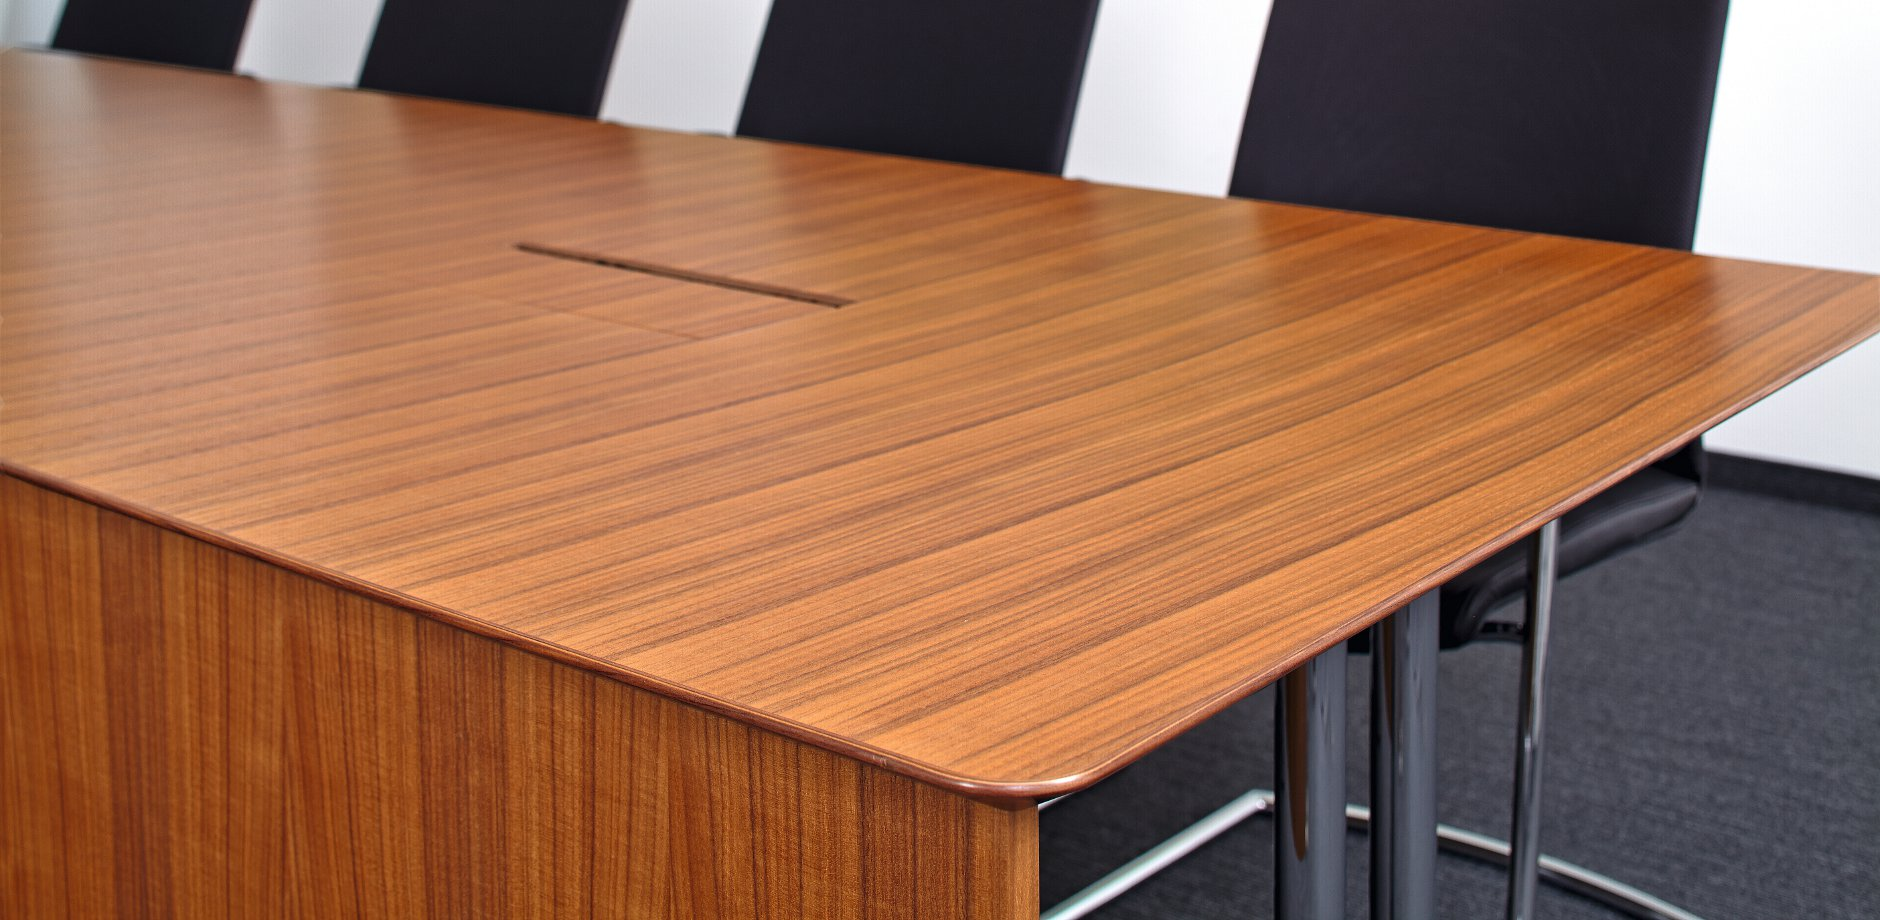 Ipsen Pharma, Germany, ON cantilever chair and Logon conference table by Wilkhahn